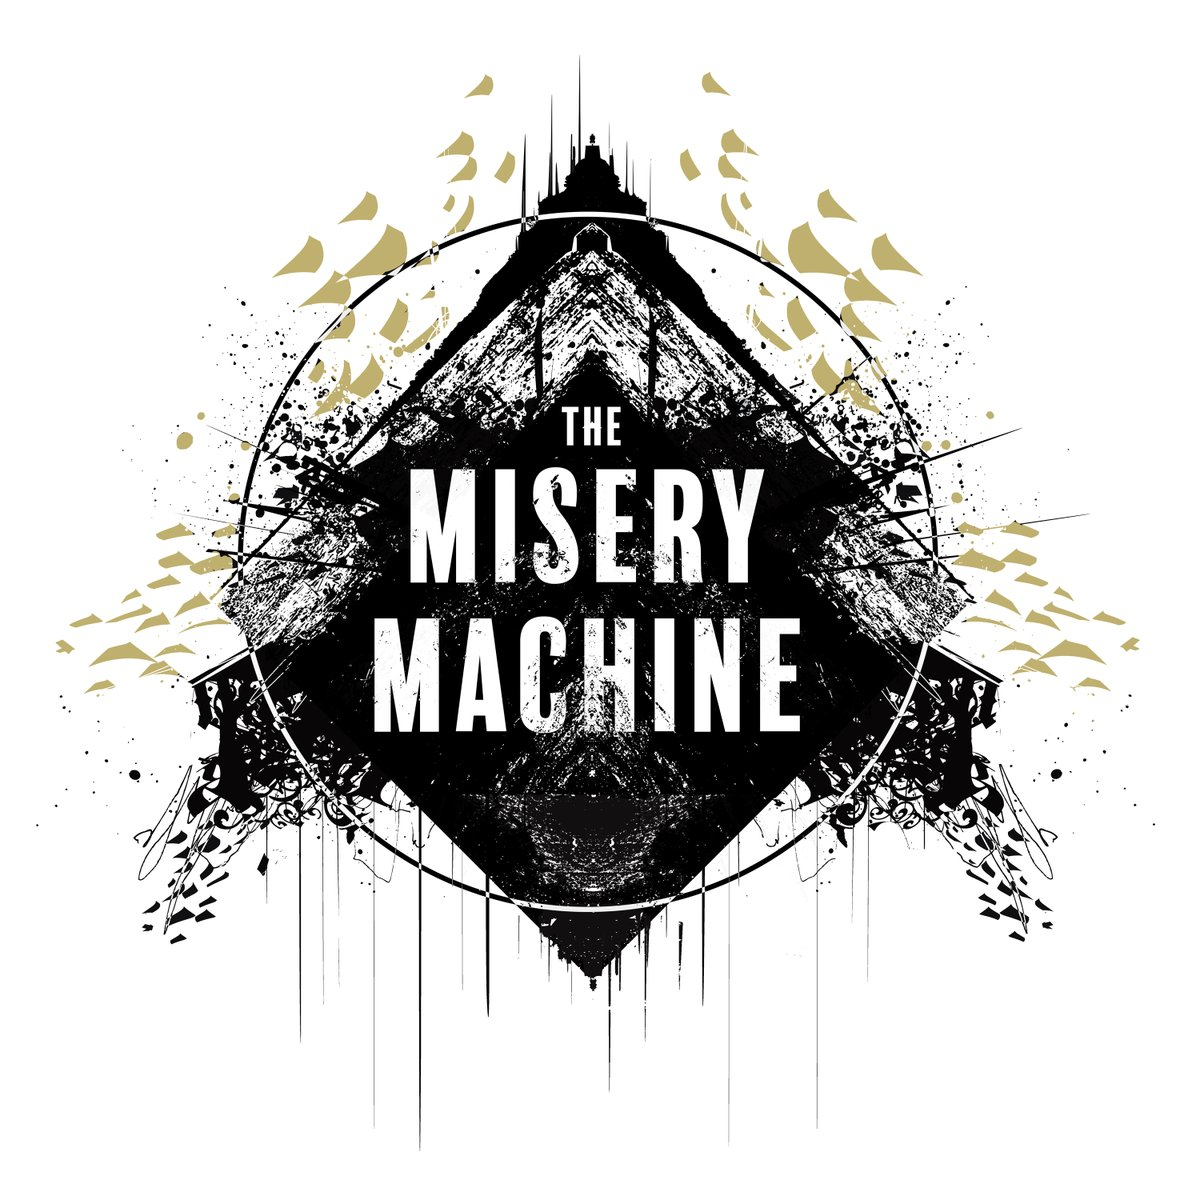 Welcome @misery_podcast to the Indie Drop-In Family! Check out the podcast at https://themiserymachine.podbean.com/ . . #truecrime #indiepodcast #podcast #podcaster pic.twitter.com/UBHcrHOsAk